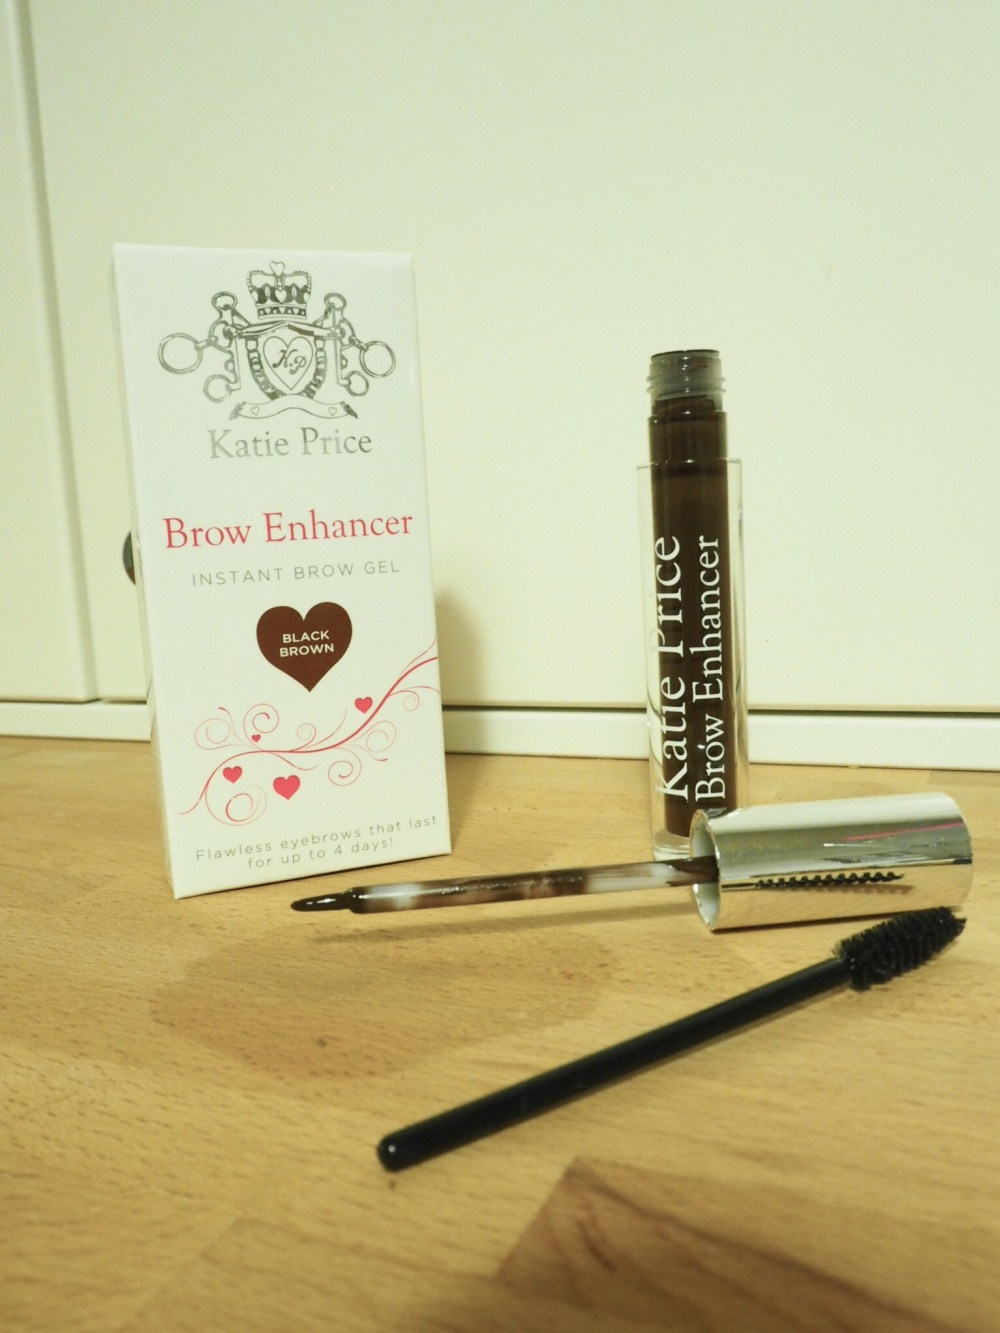 Katie Price Brow Enhancer. Packaging and brushes